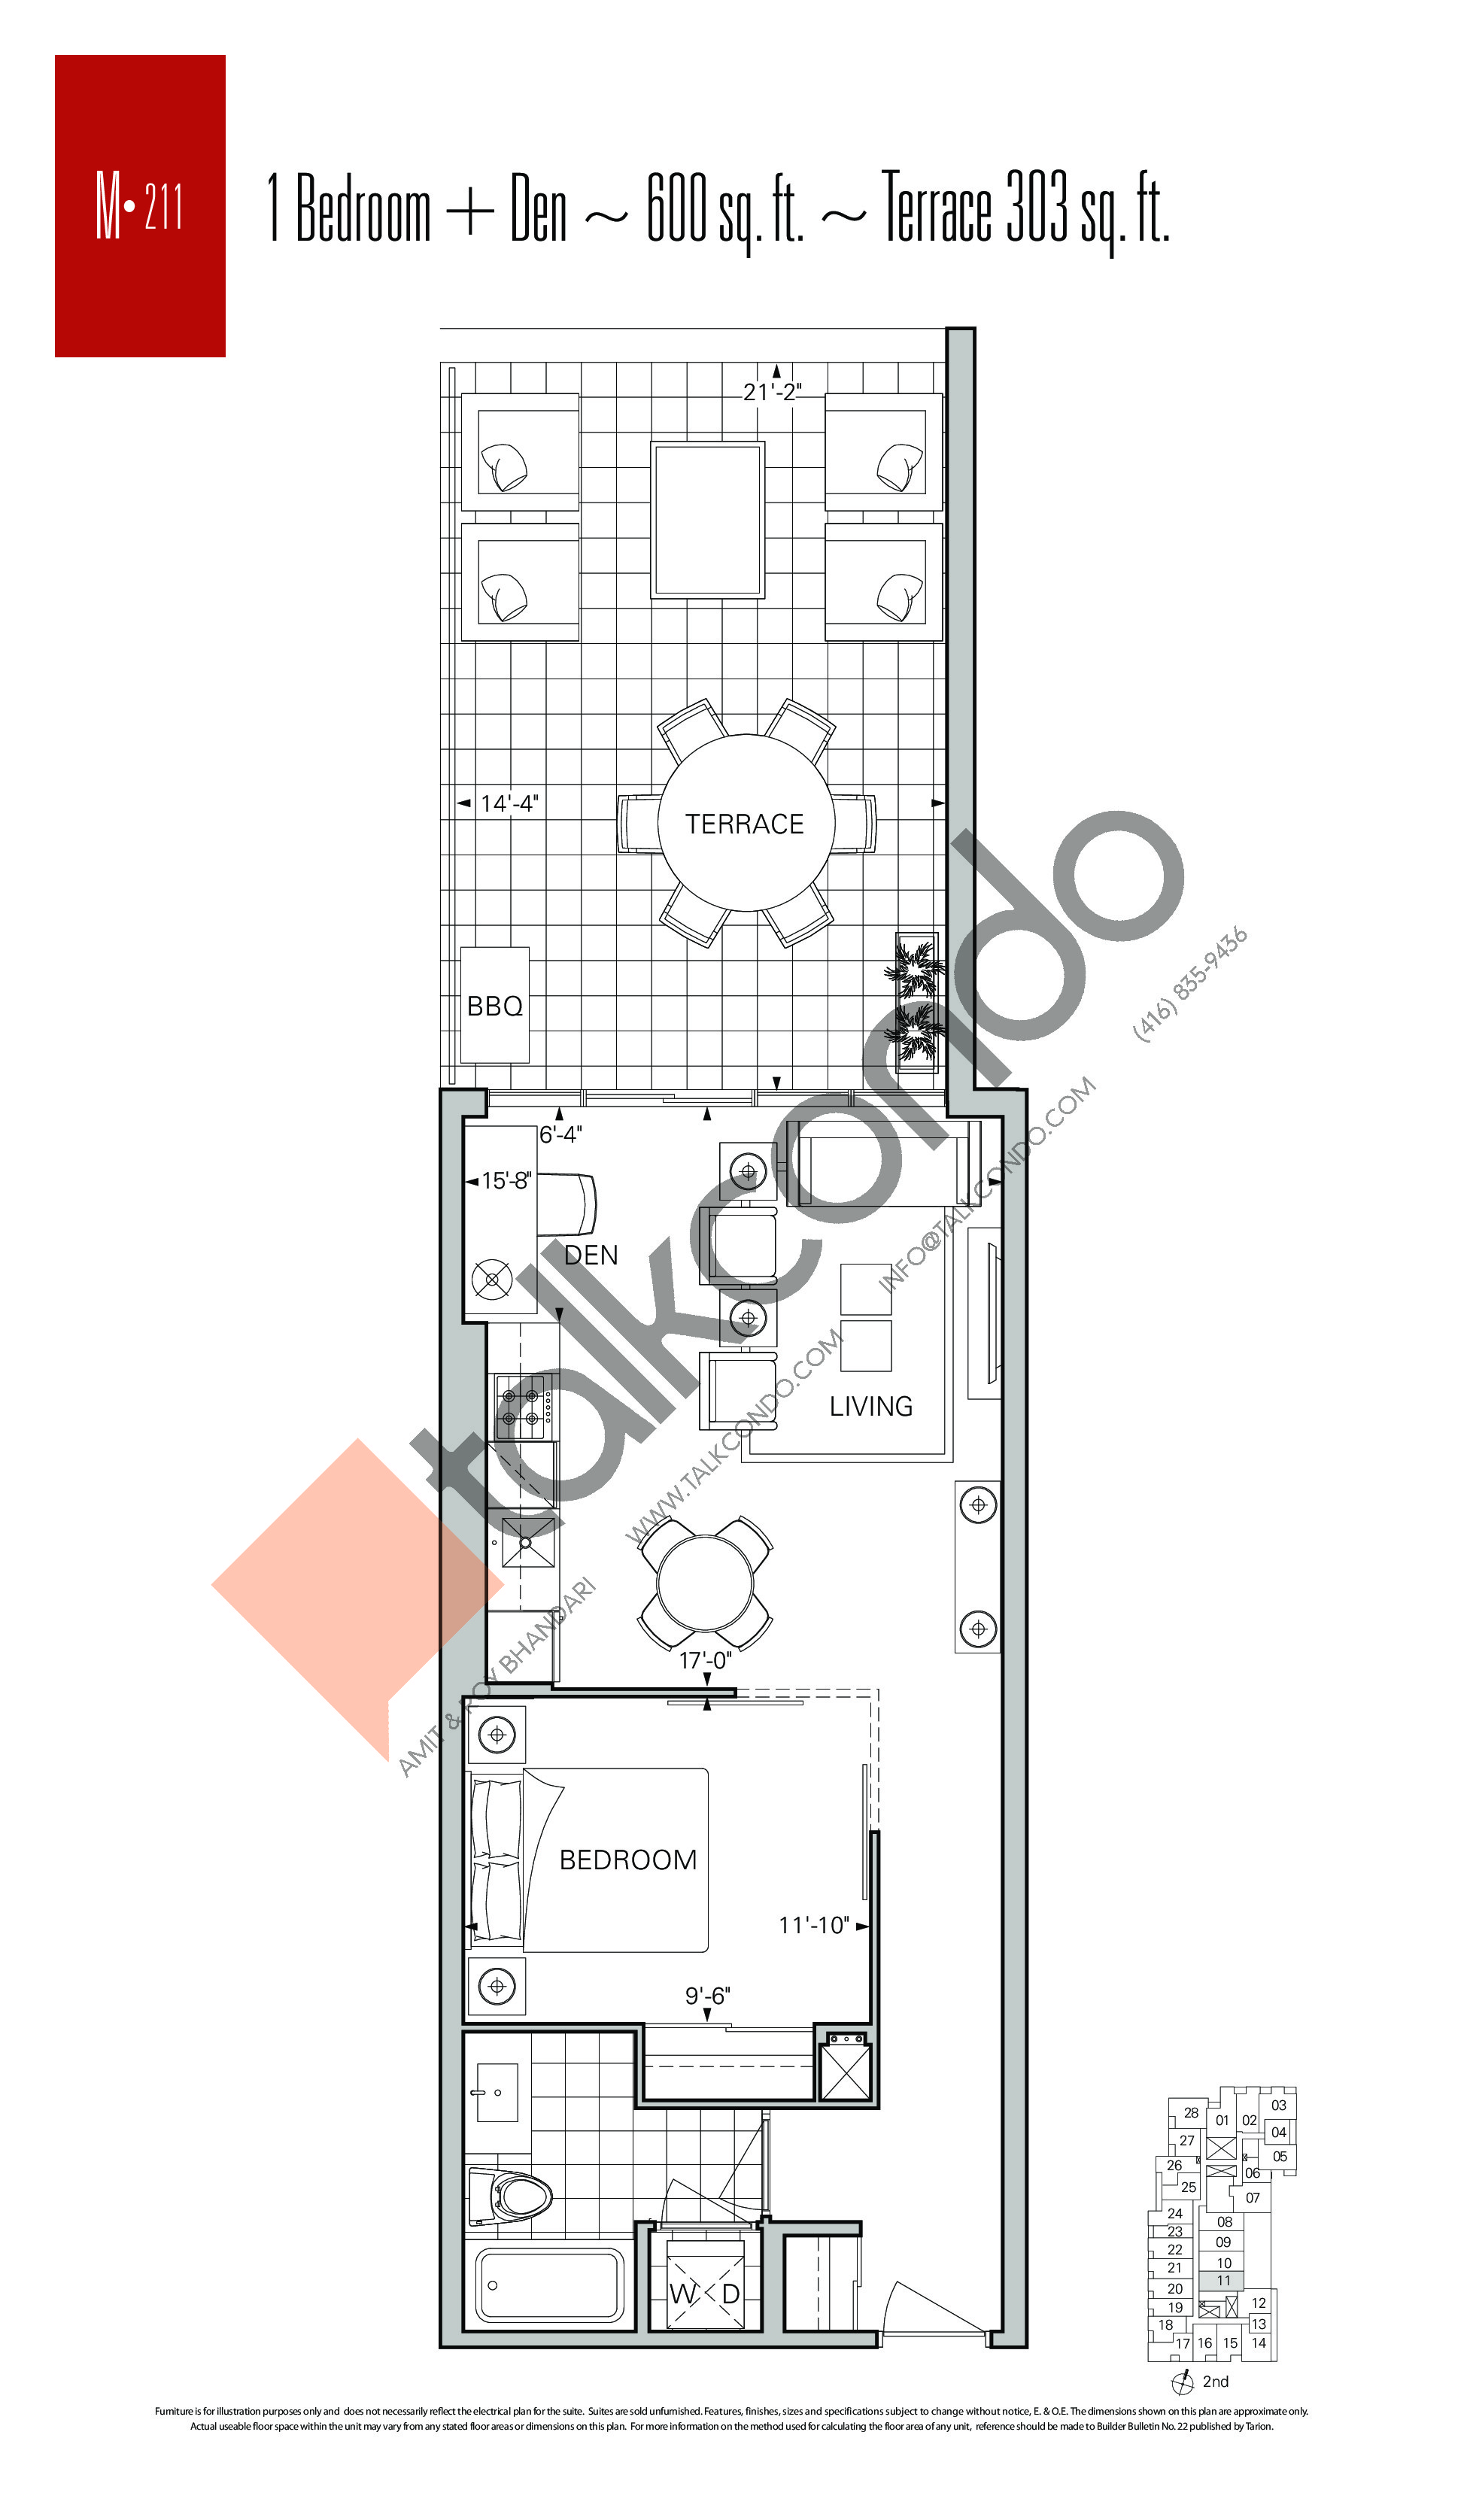 M-211 Floor Plan at Rise Condos - 600 sq.ft